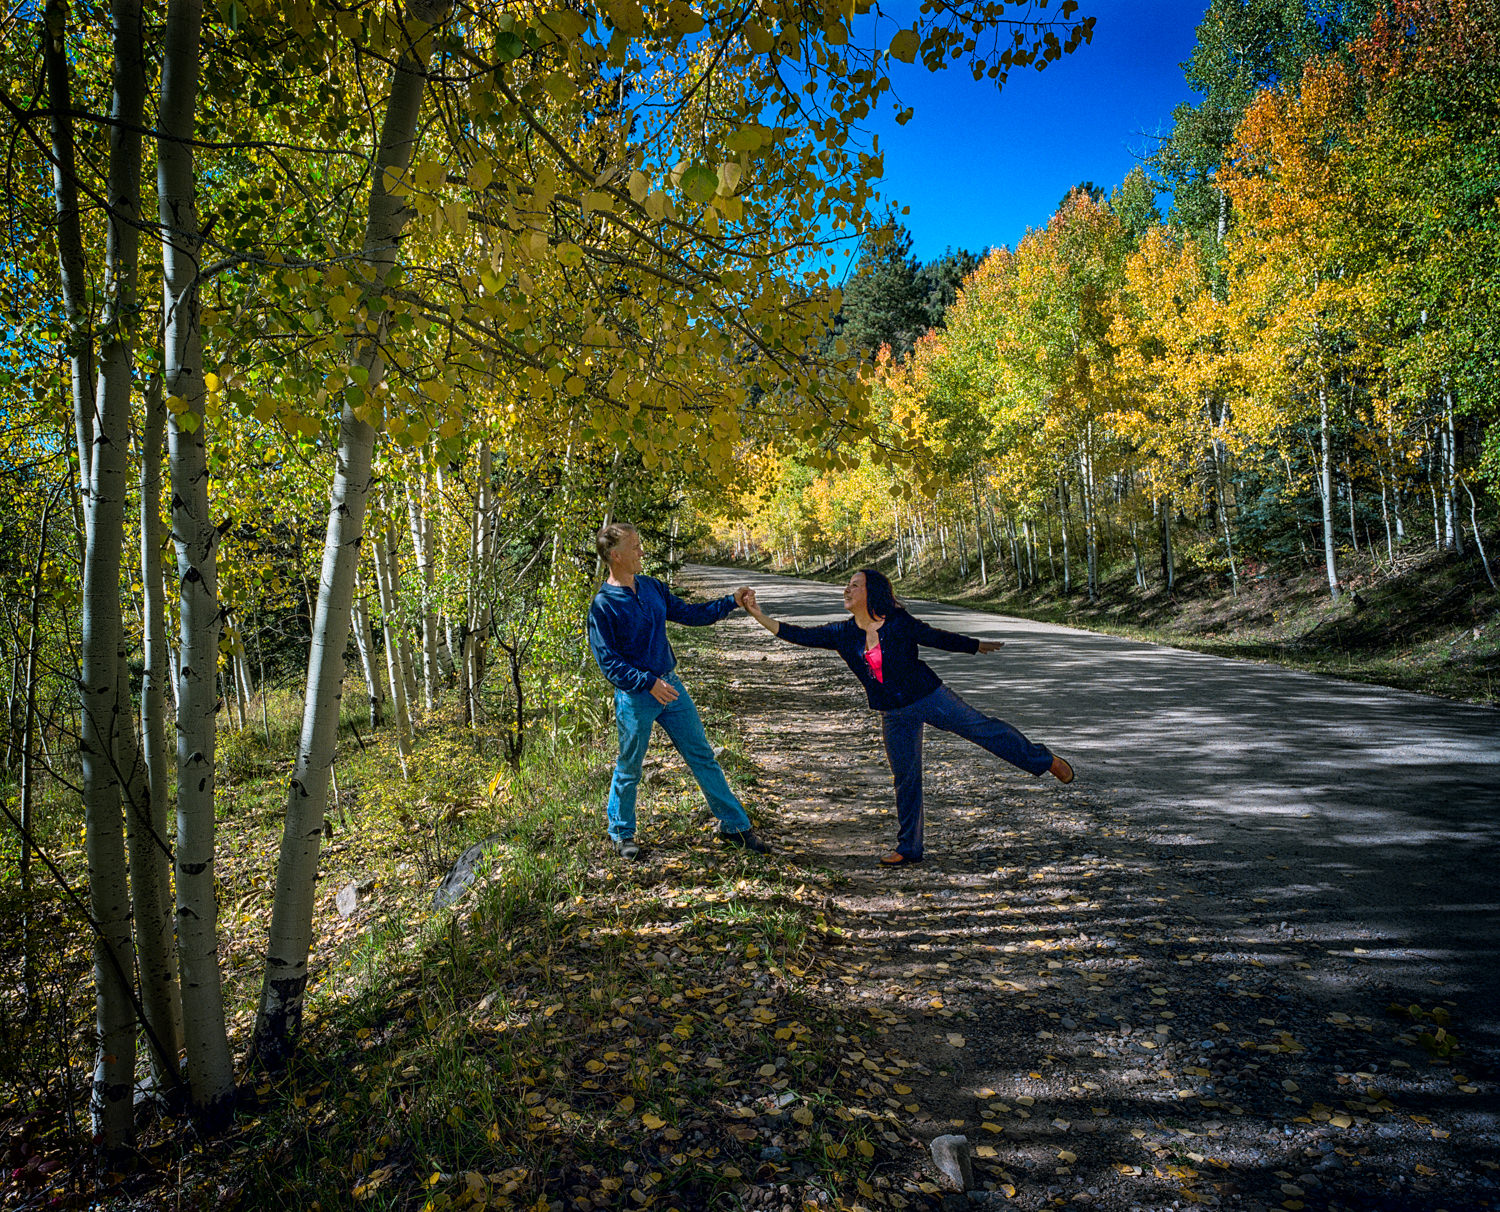 Santa Barbara Canyon, New Mexico. The best romantic selfies are those that look entirely spontaneous, such as this moment among the autumn foliage.